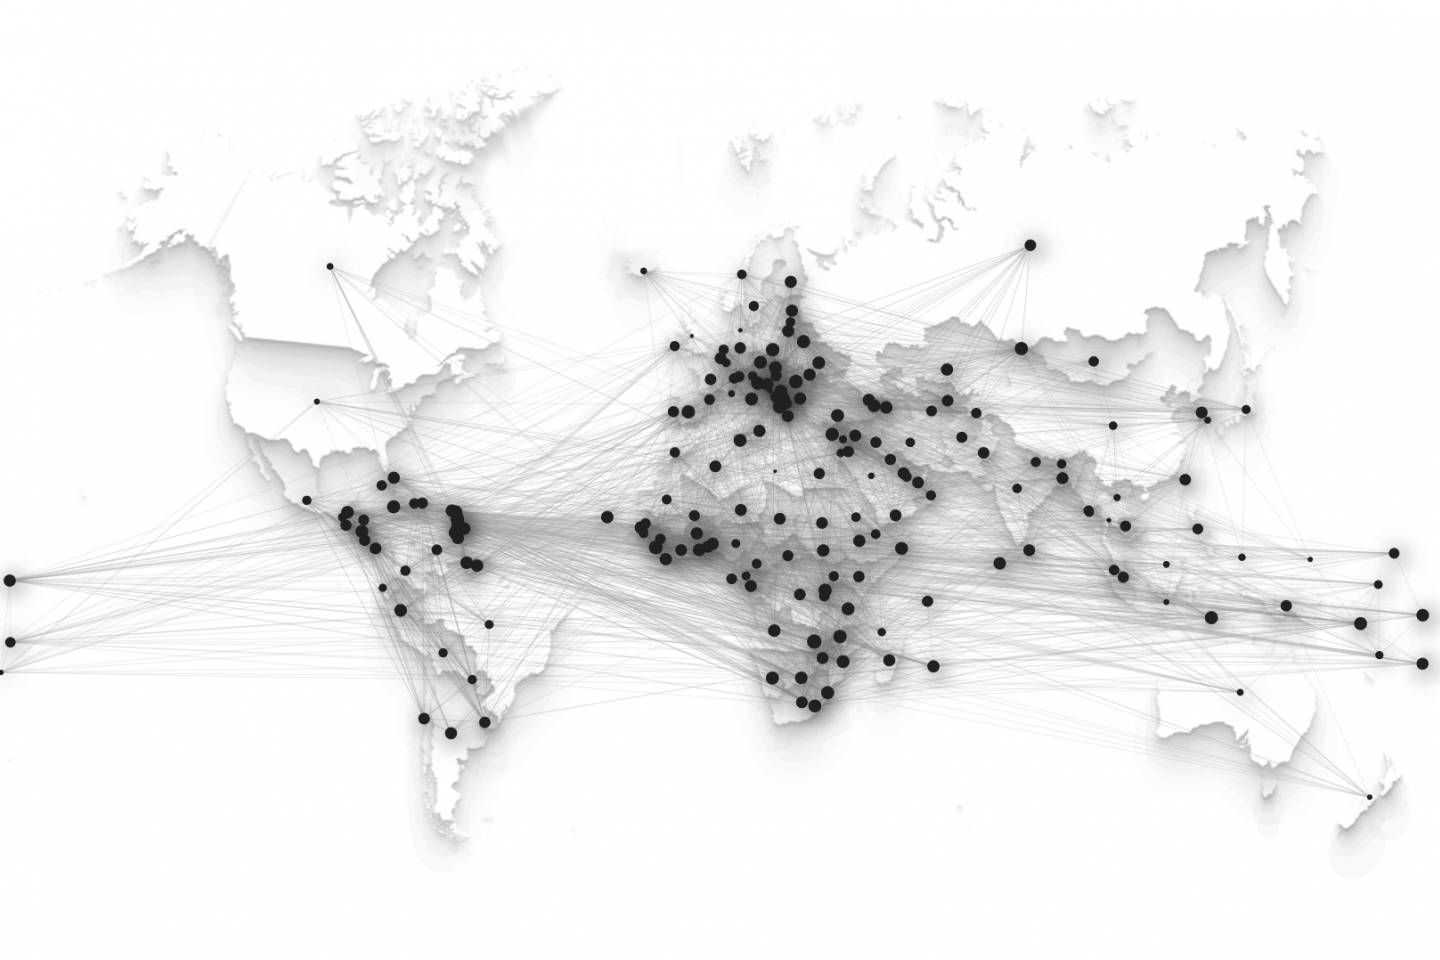 Map of data plotted in the a global map